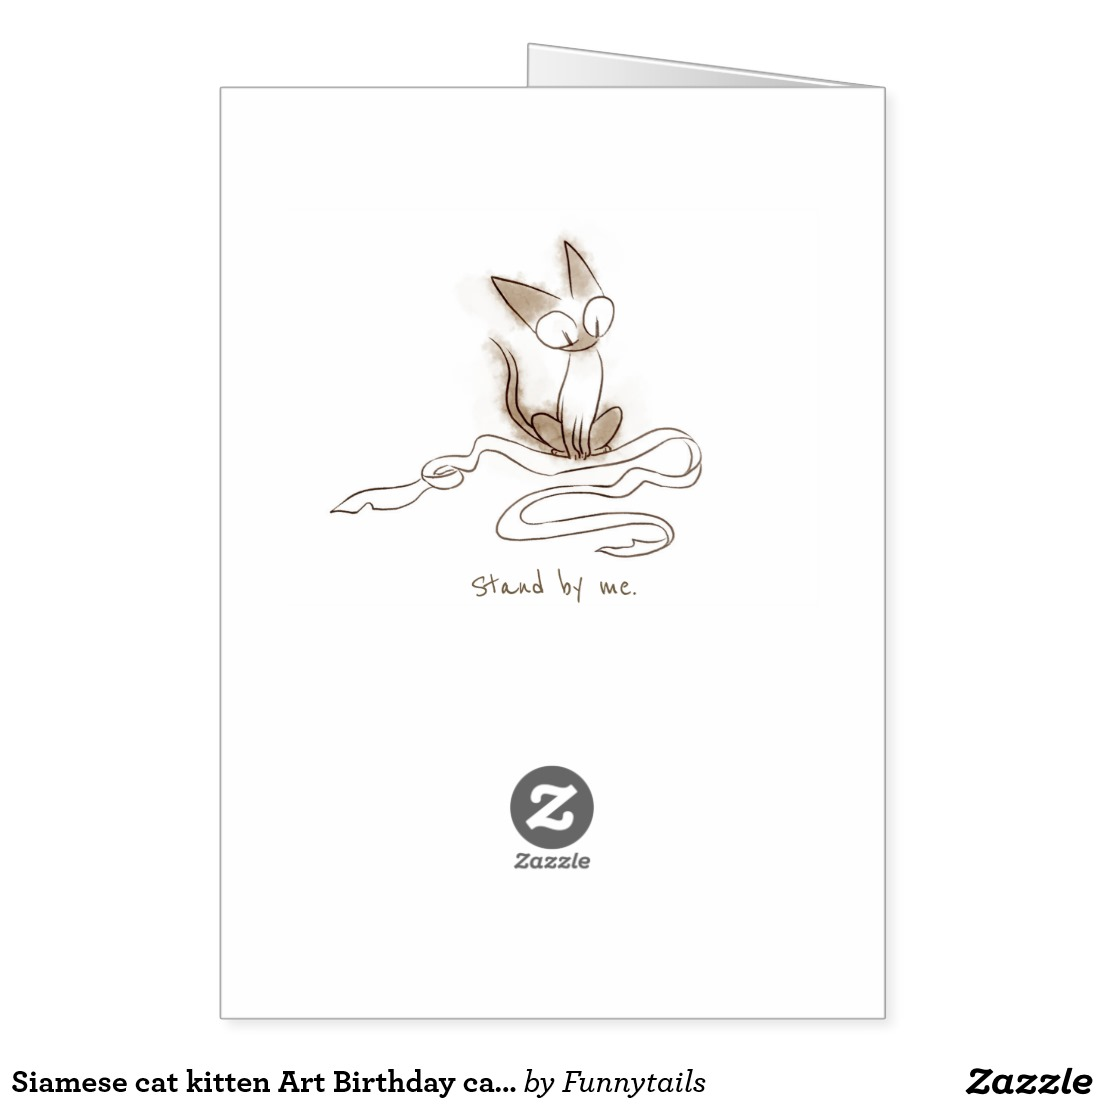 Siamese cat kitten Art Birthday card4